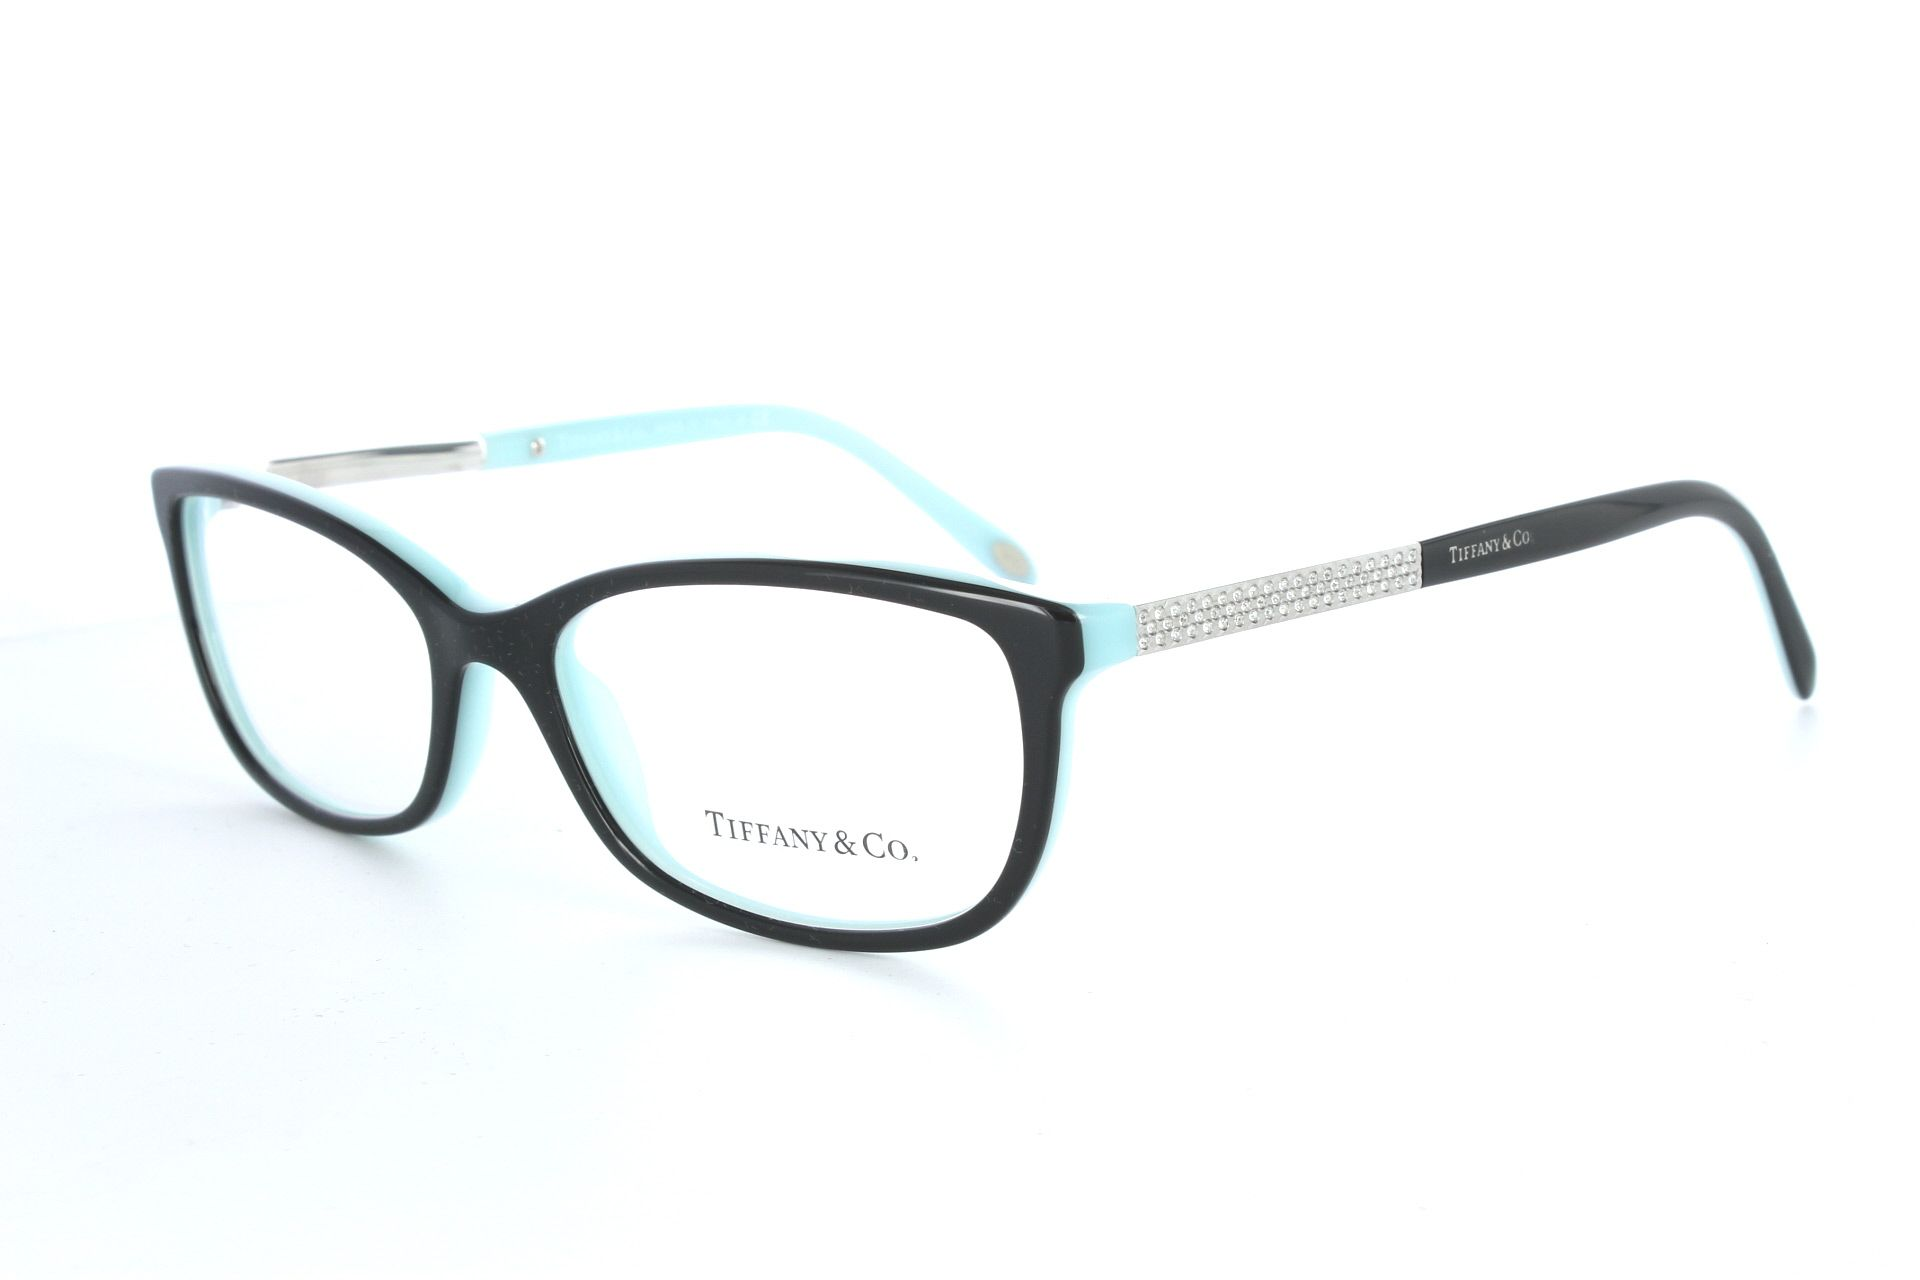 bb481902992c Tiffany and Co Eyeglass Frames